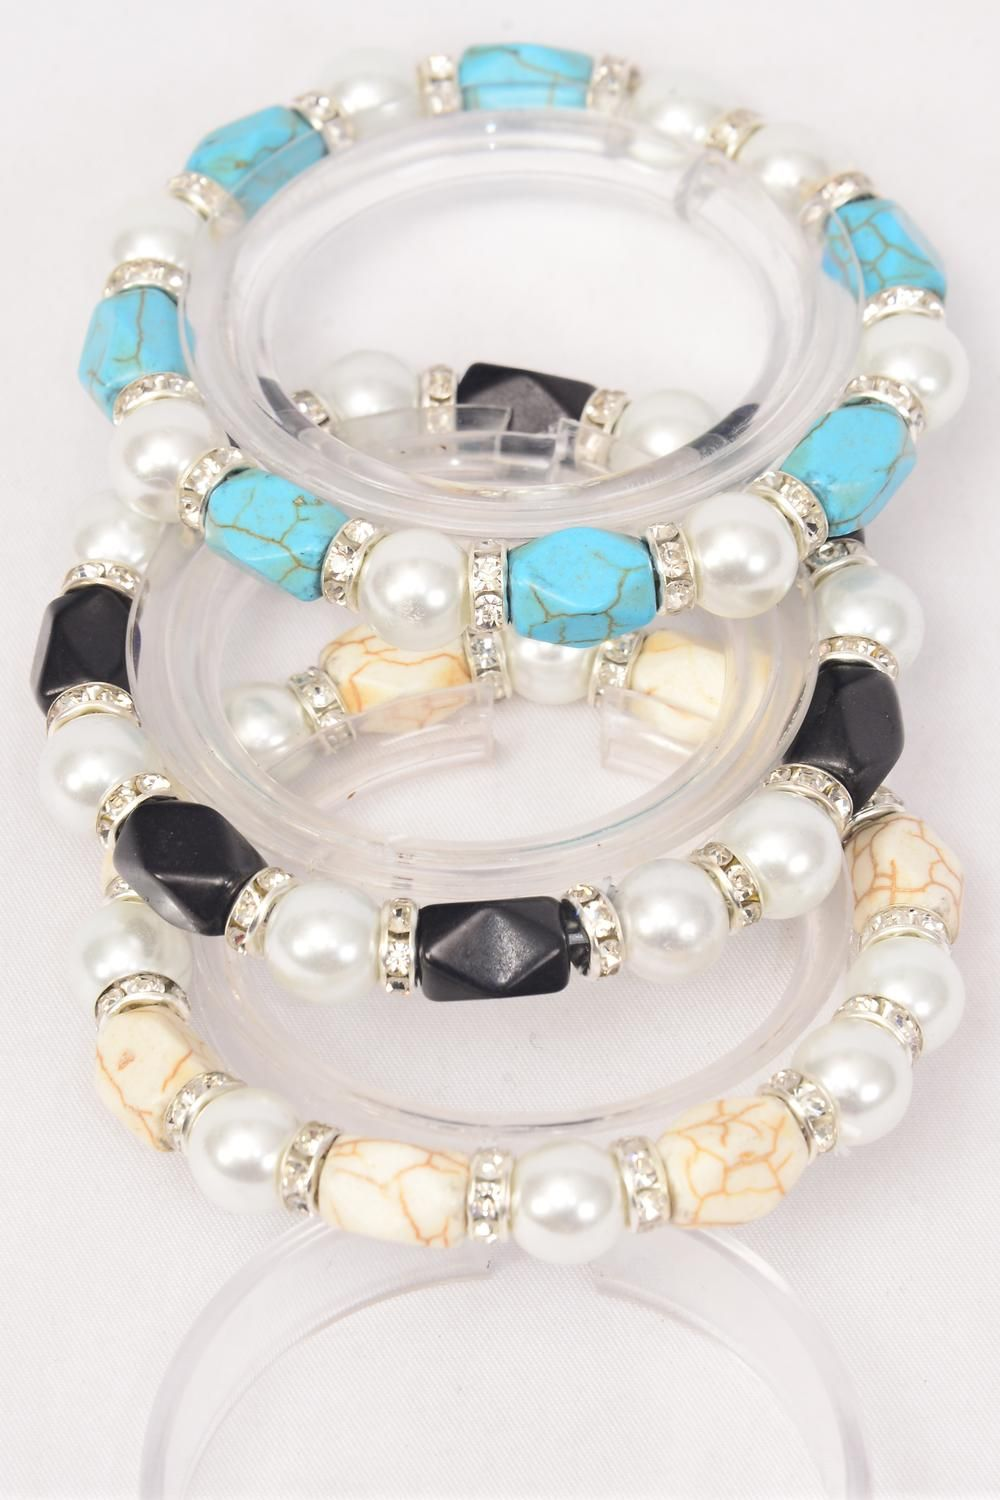 Bracelet 12 mm Glass Pearl & Semiprecious Stone & Rhinestone Bessel Mix Stretch/DZ **Stretch** 4 Ivory,4 Black,4 Turquoise Mix,Hang Tag & Opp Bag & UPC Code -